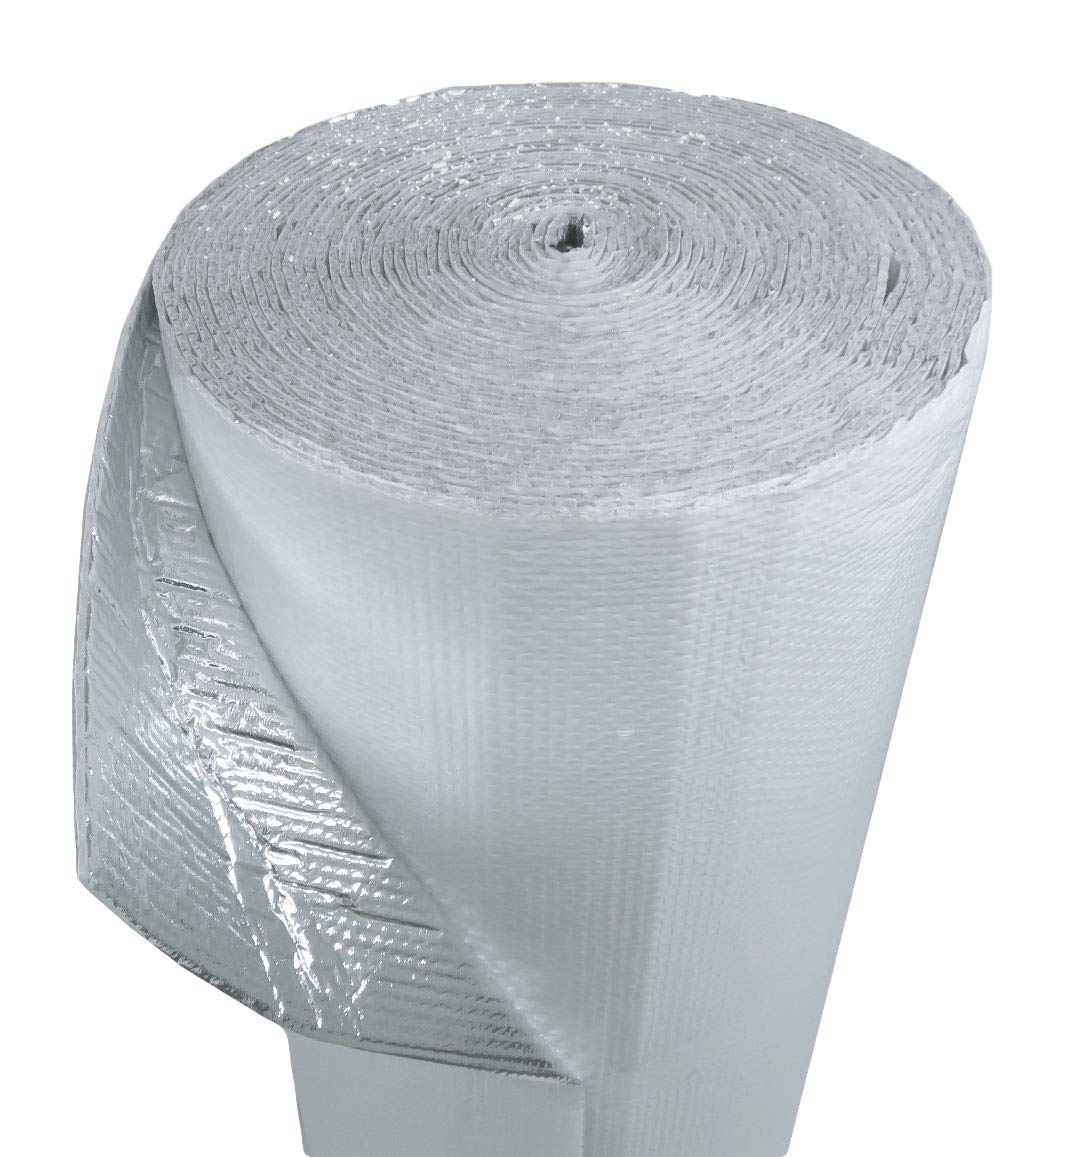 US Energy Products NASATECH 48'' x 125' Single Bubble White Reflective Foil Insulation Vapor Barrier by US Energy Products (Image #1)